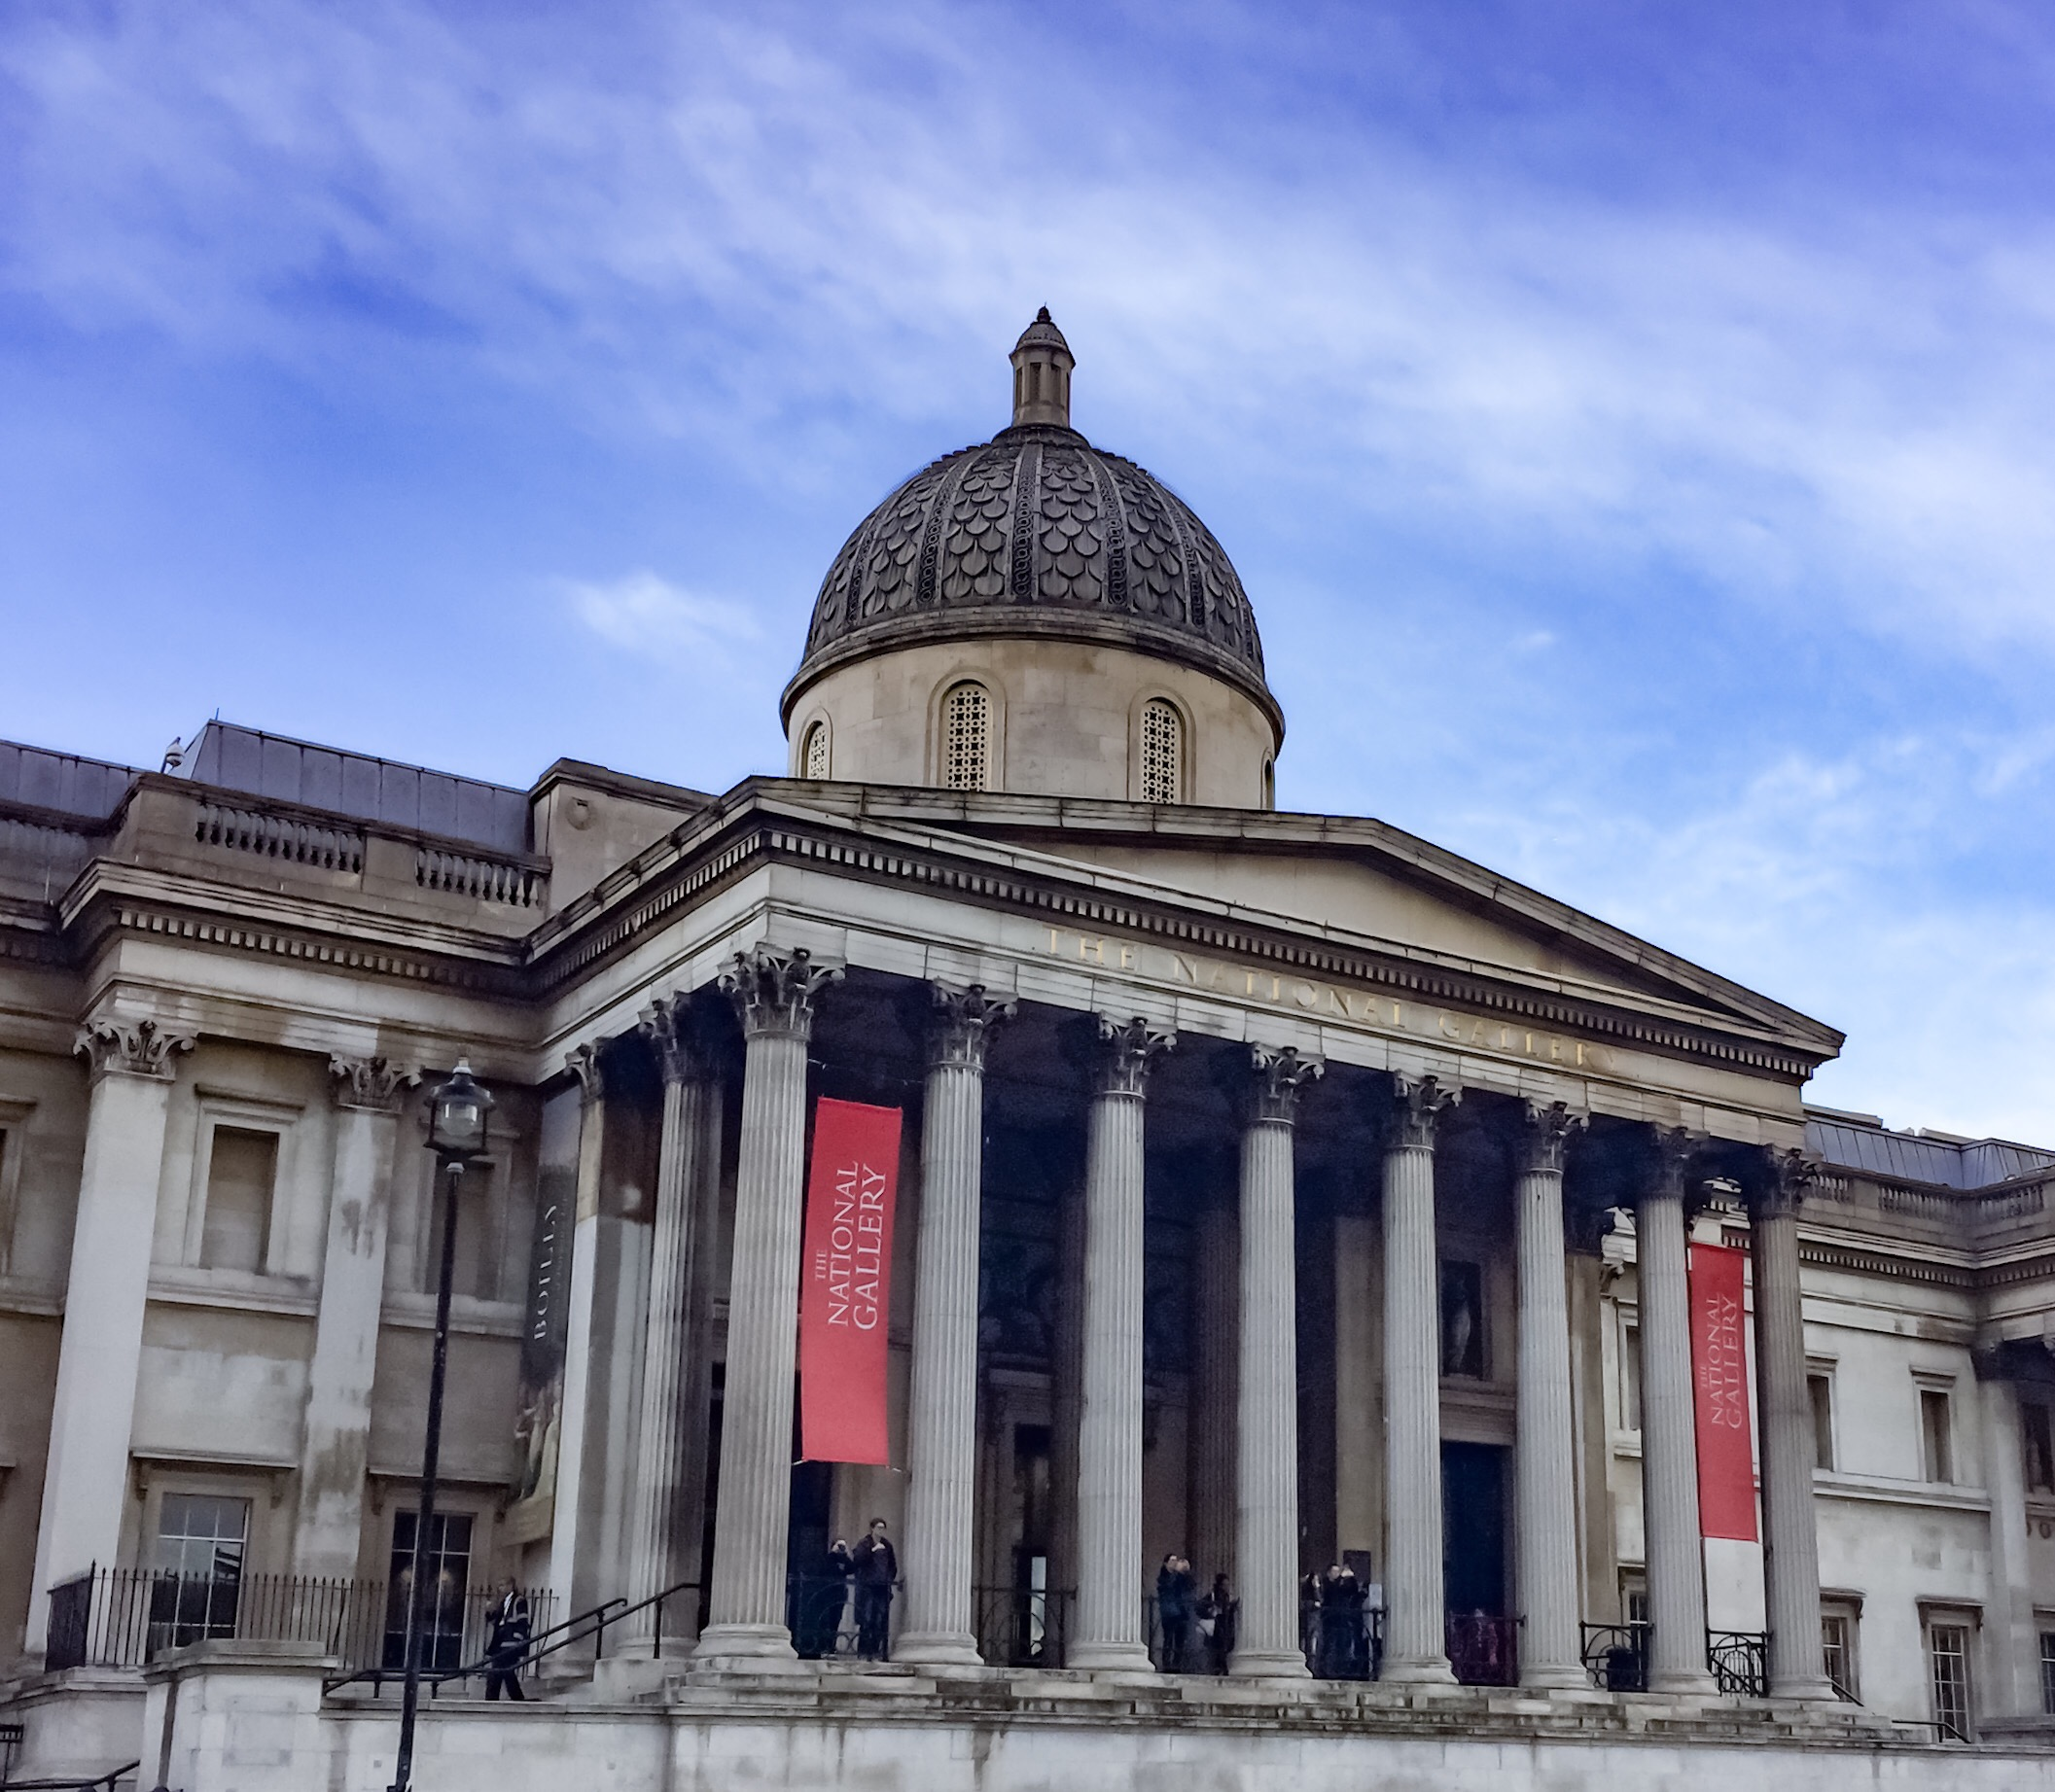 exterior view of the front of the National Gallery London